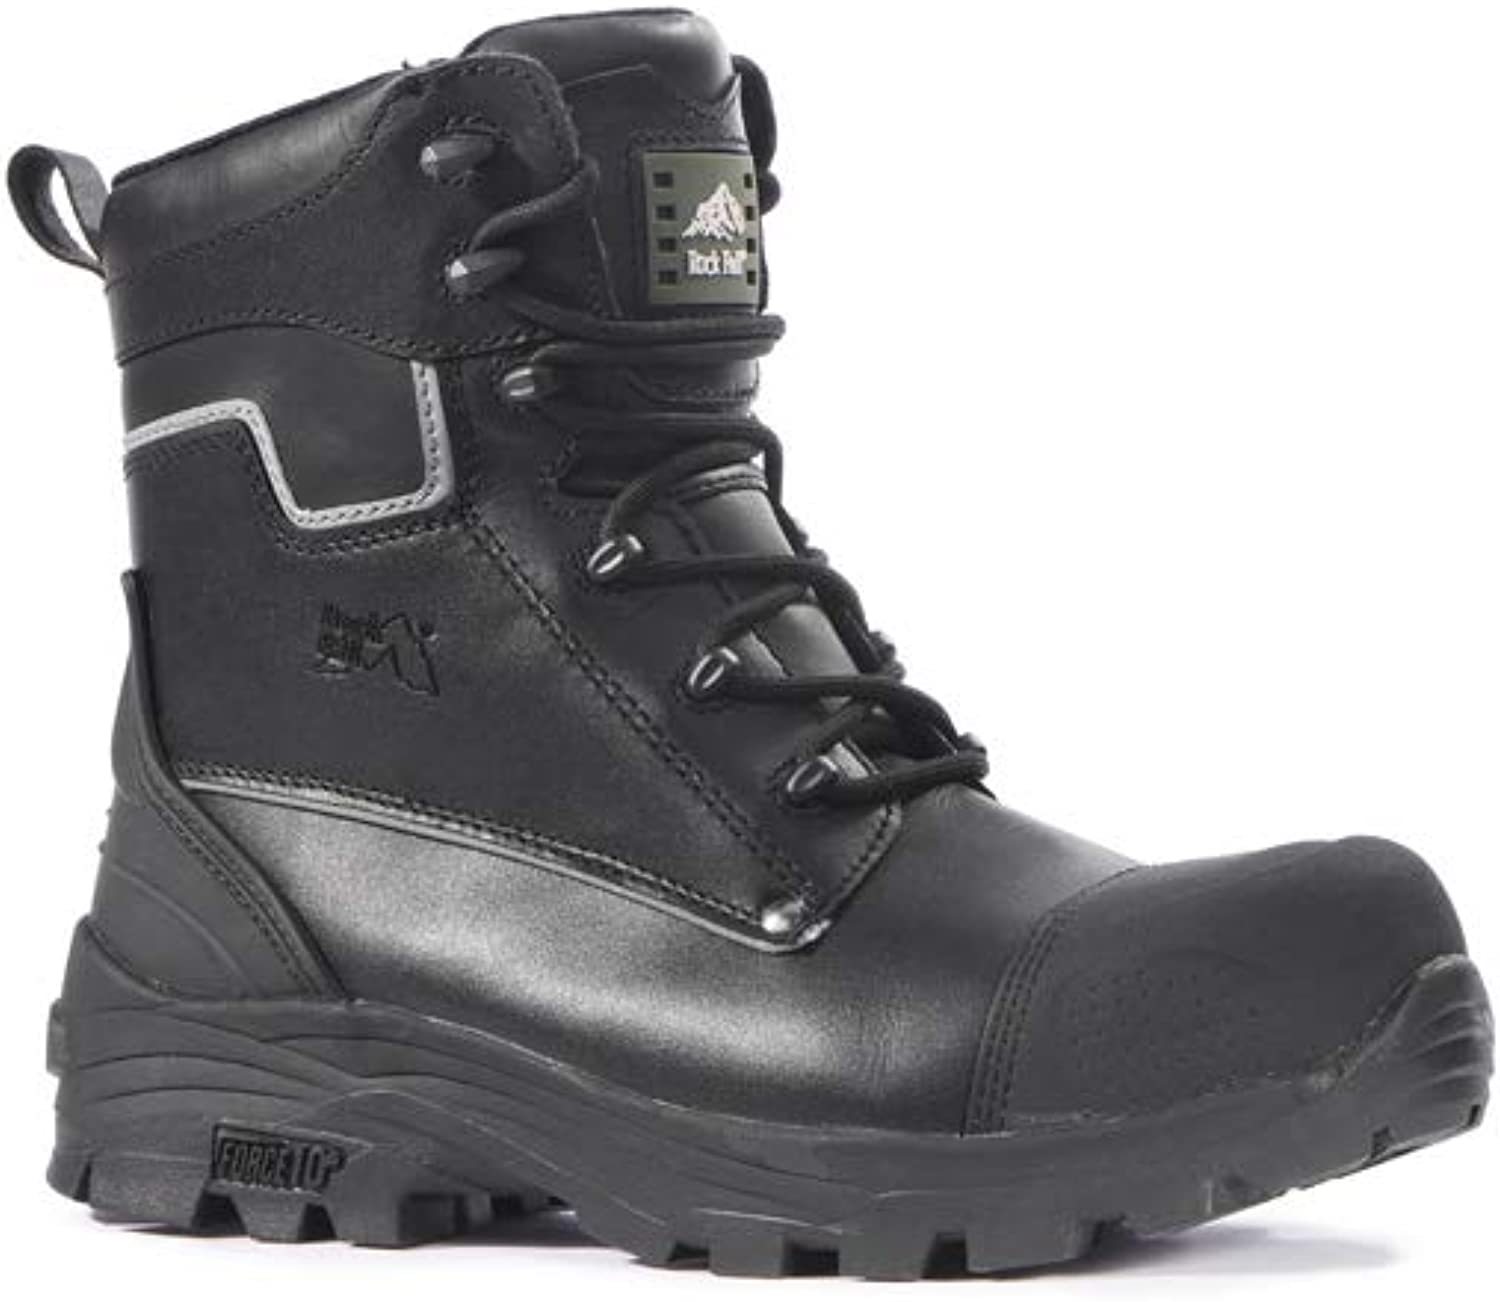 Rock Fall RF15 Shale 14 Safety Boot, Black